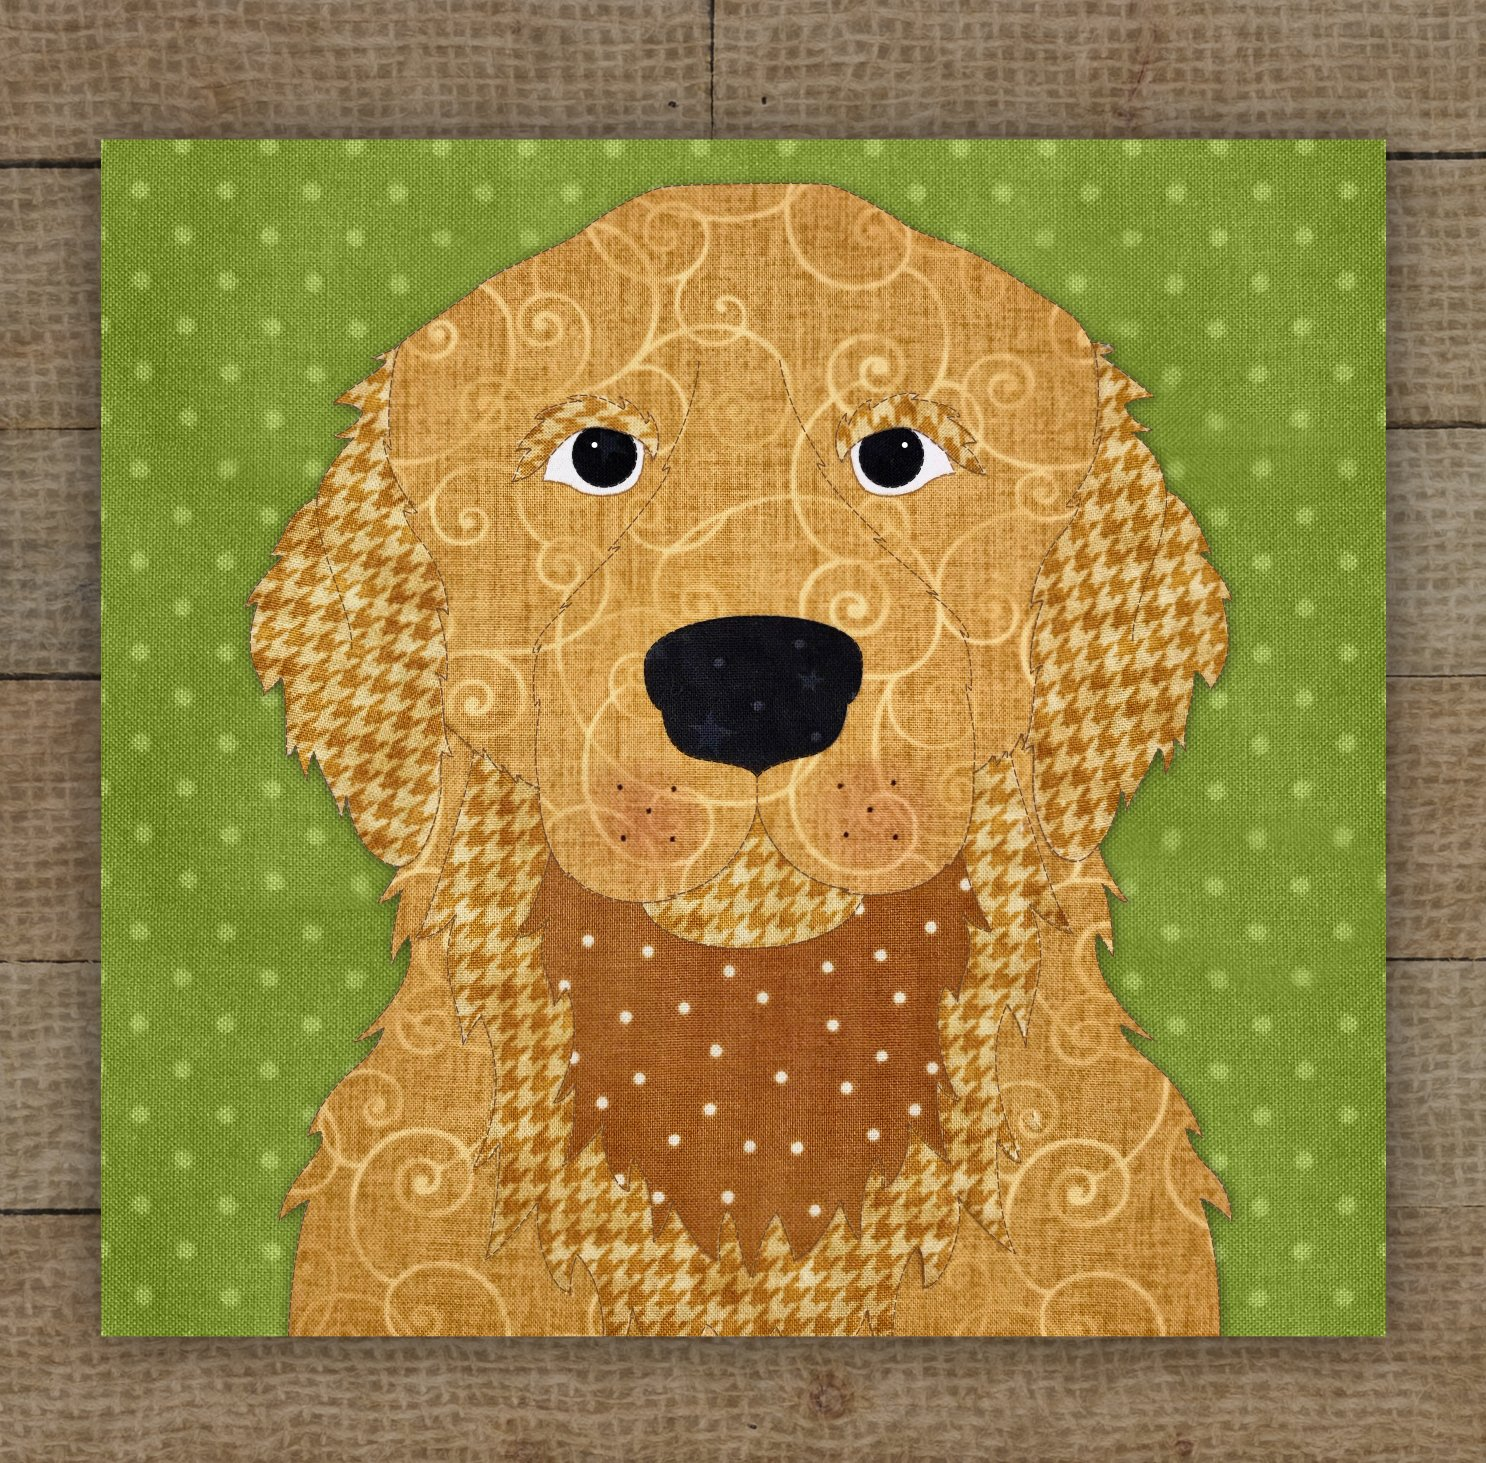 Golden Retriever (Gold) Precut Fused Applique Kit